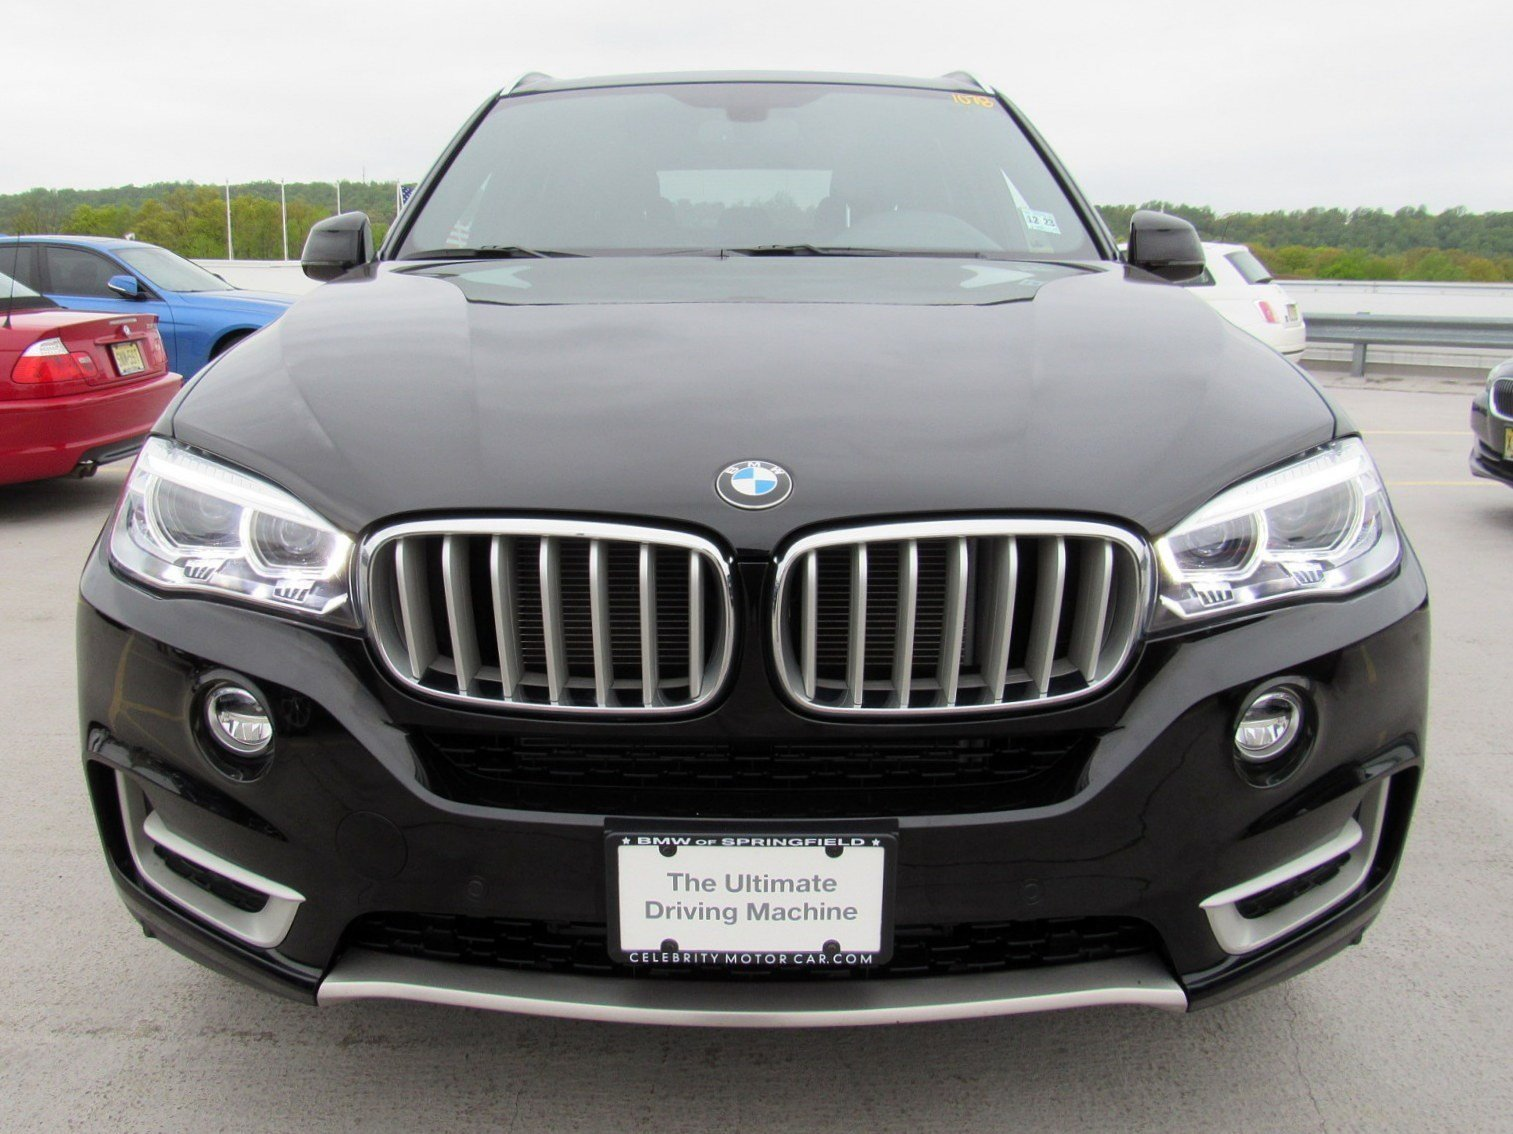 Pre-Owned 2018 BMW X5 xDrive35d With Navigation & AWD